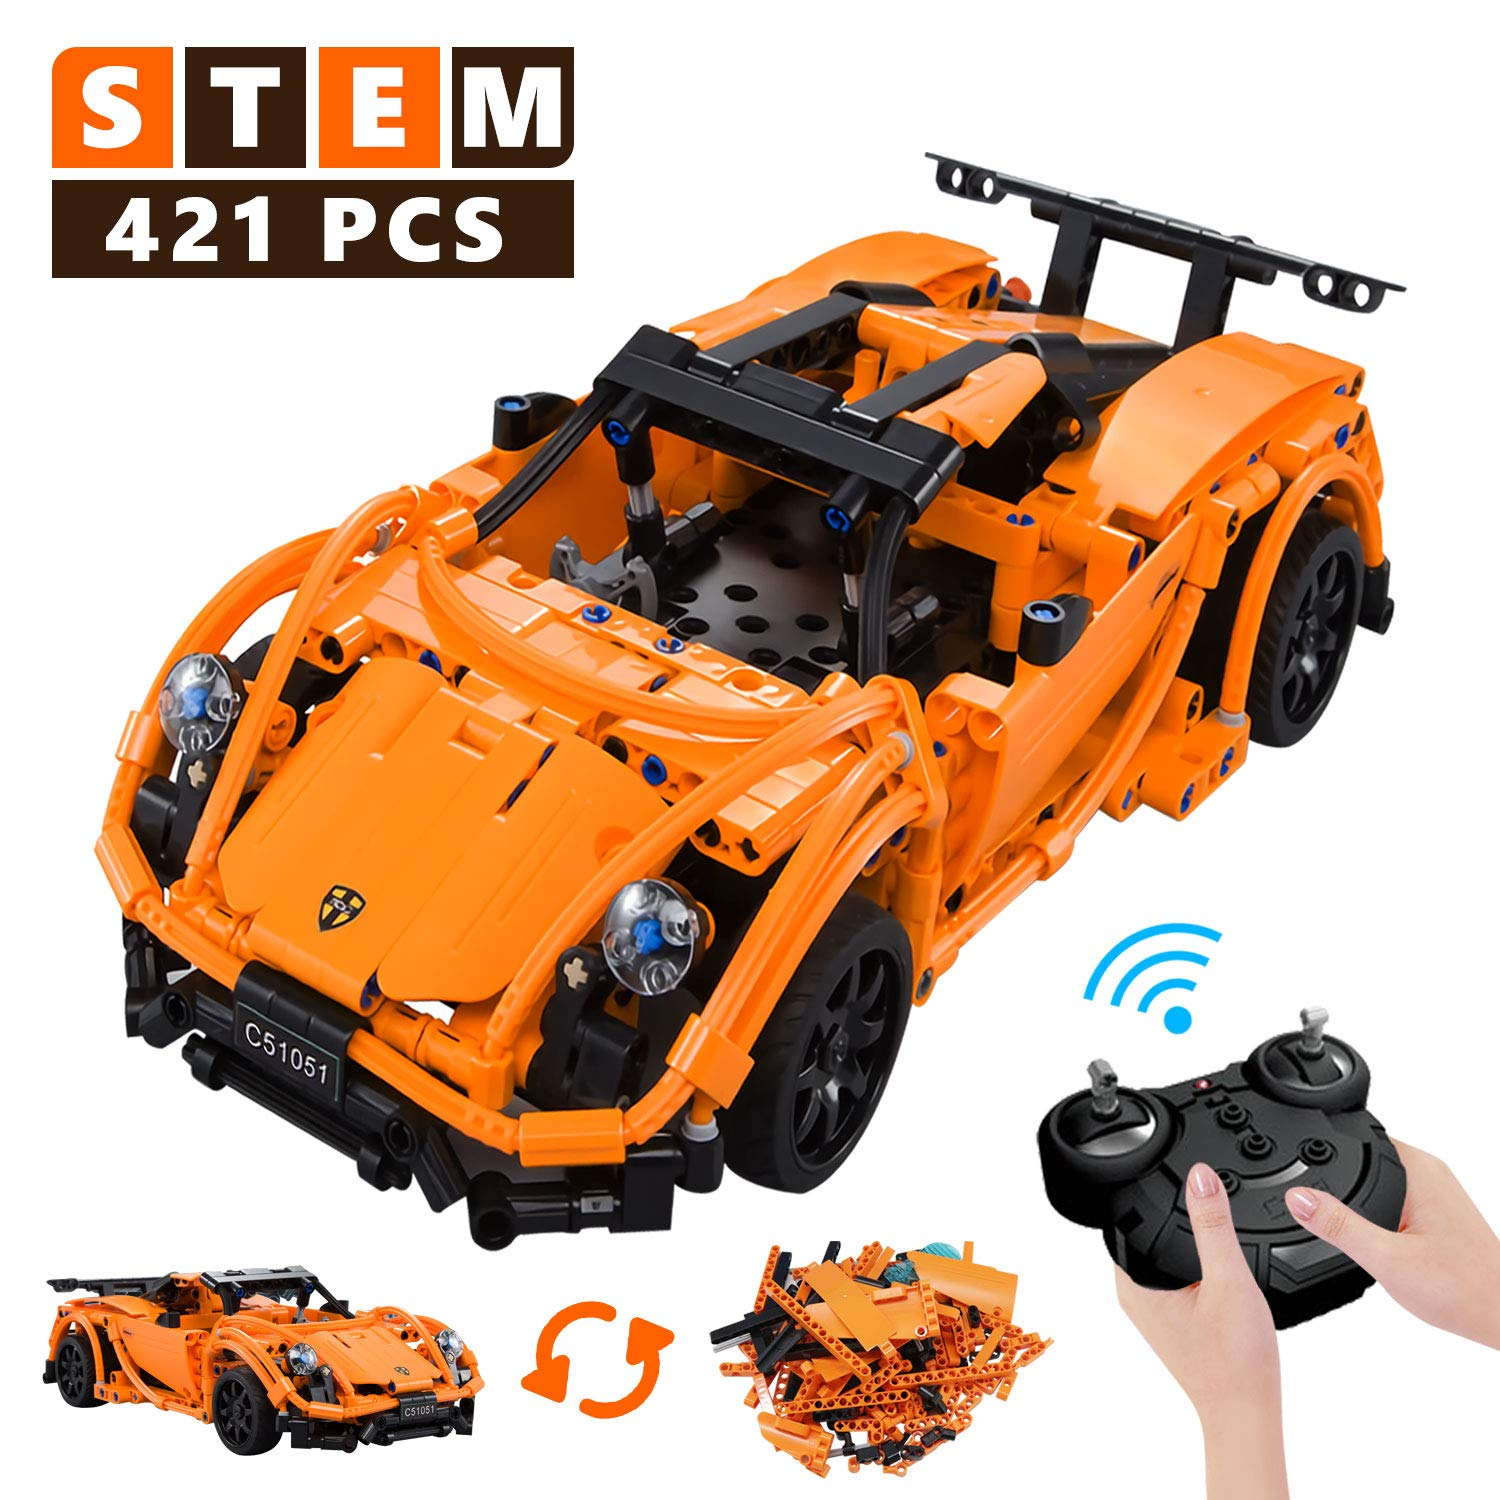 Stem Building Toys Rc Car Remote Control Car Educational Toys For Boys And Girls 421 Pieces Building Blocks Toys Top Birthday Gift For 6 10 Years Kids Model Cars Kits To Build For